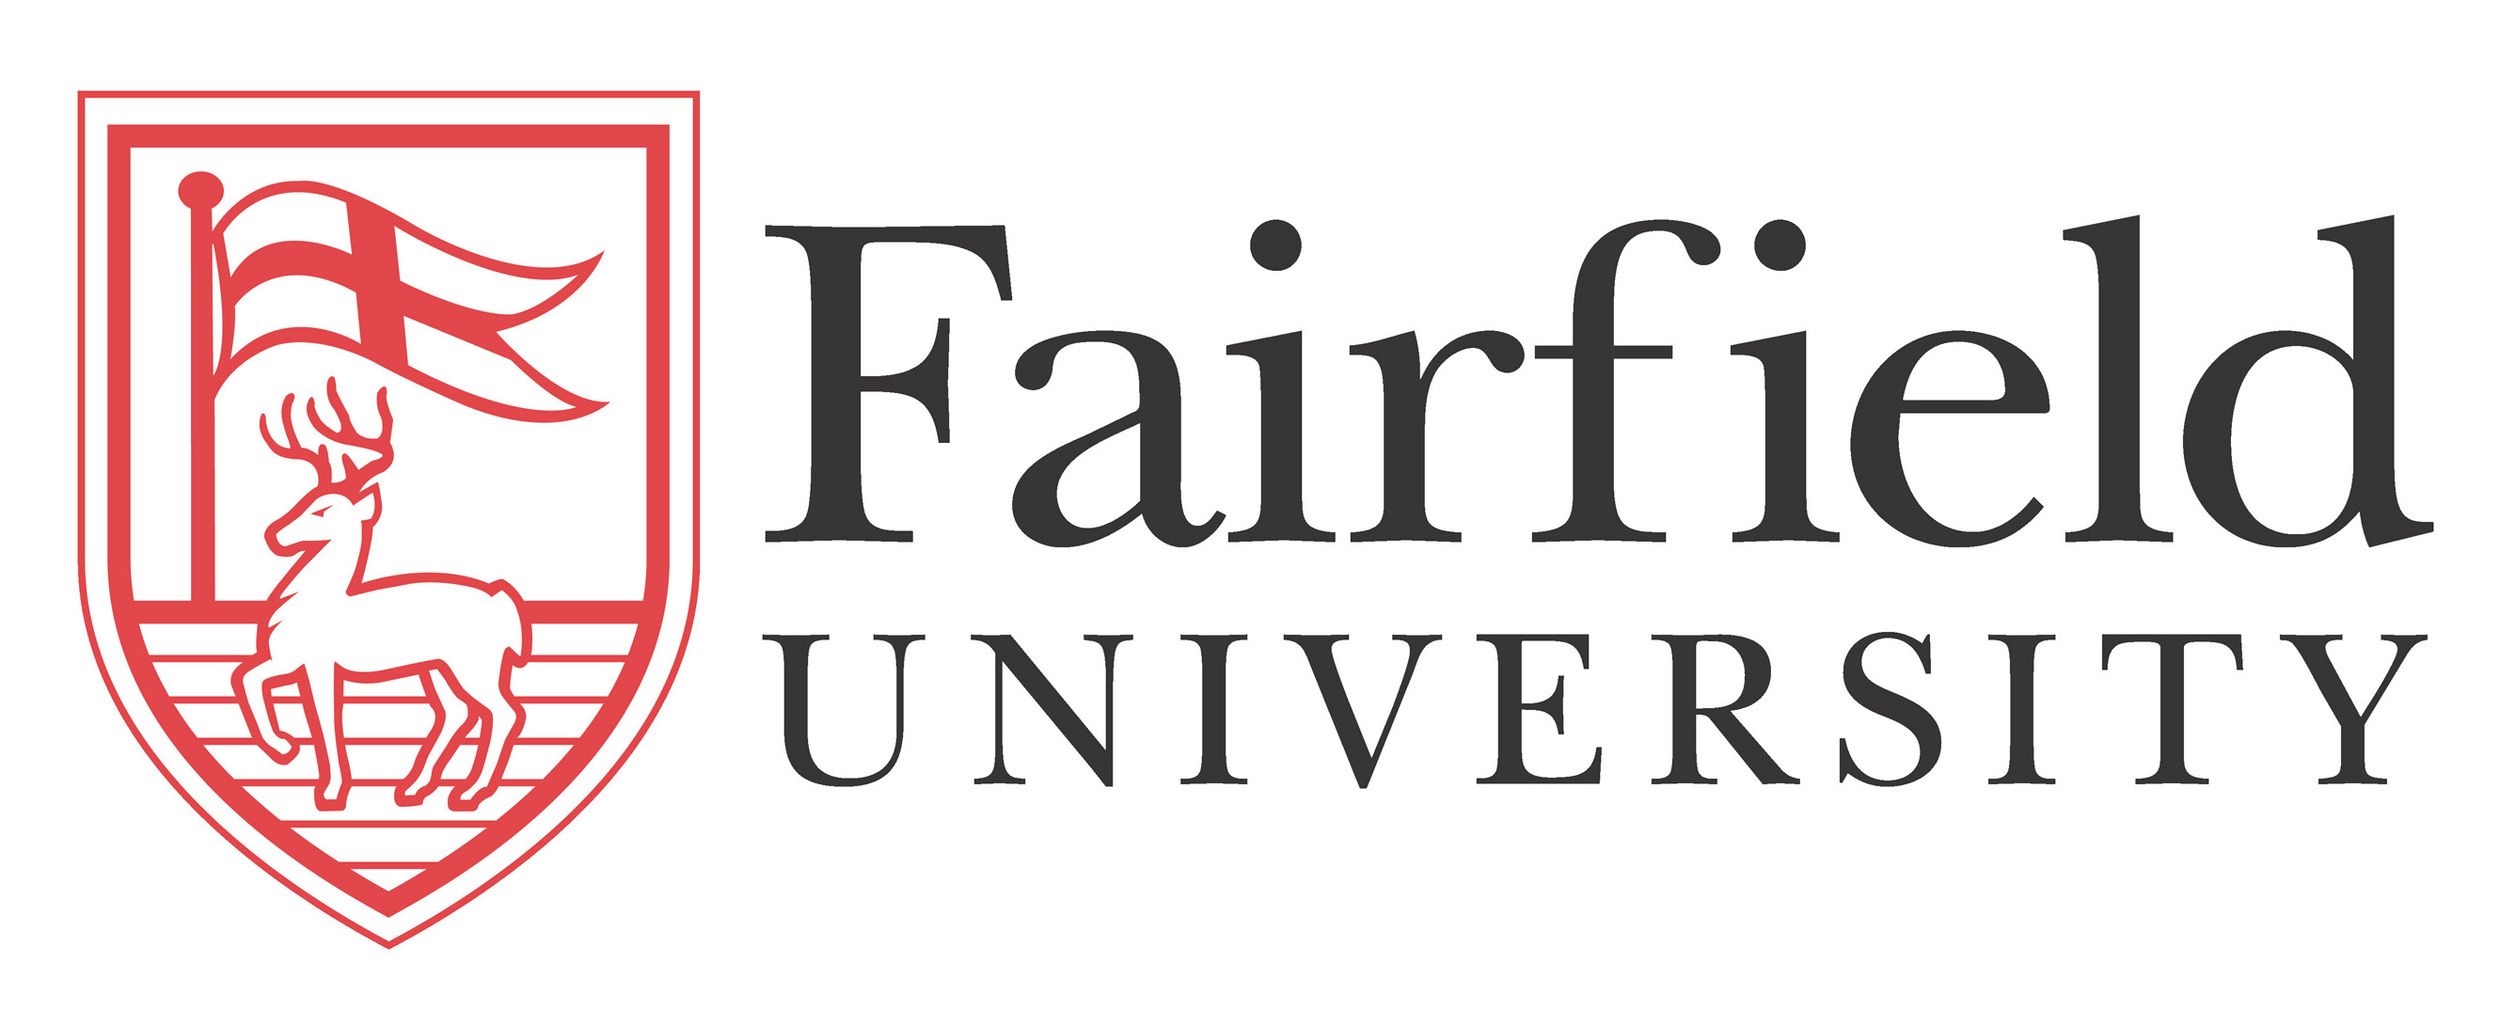 LOGO_Fairfield University.jpg